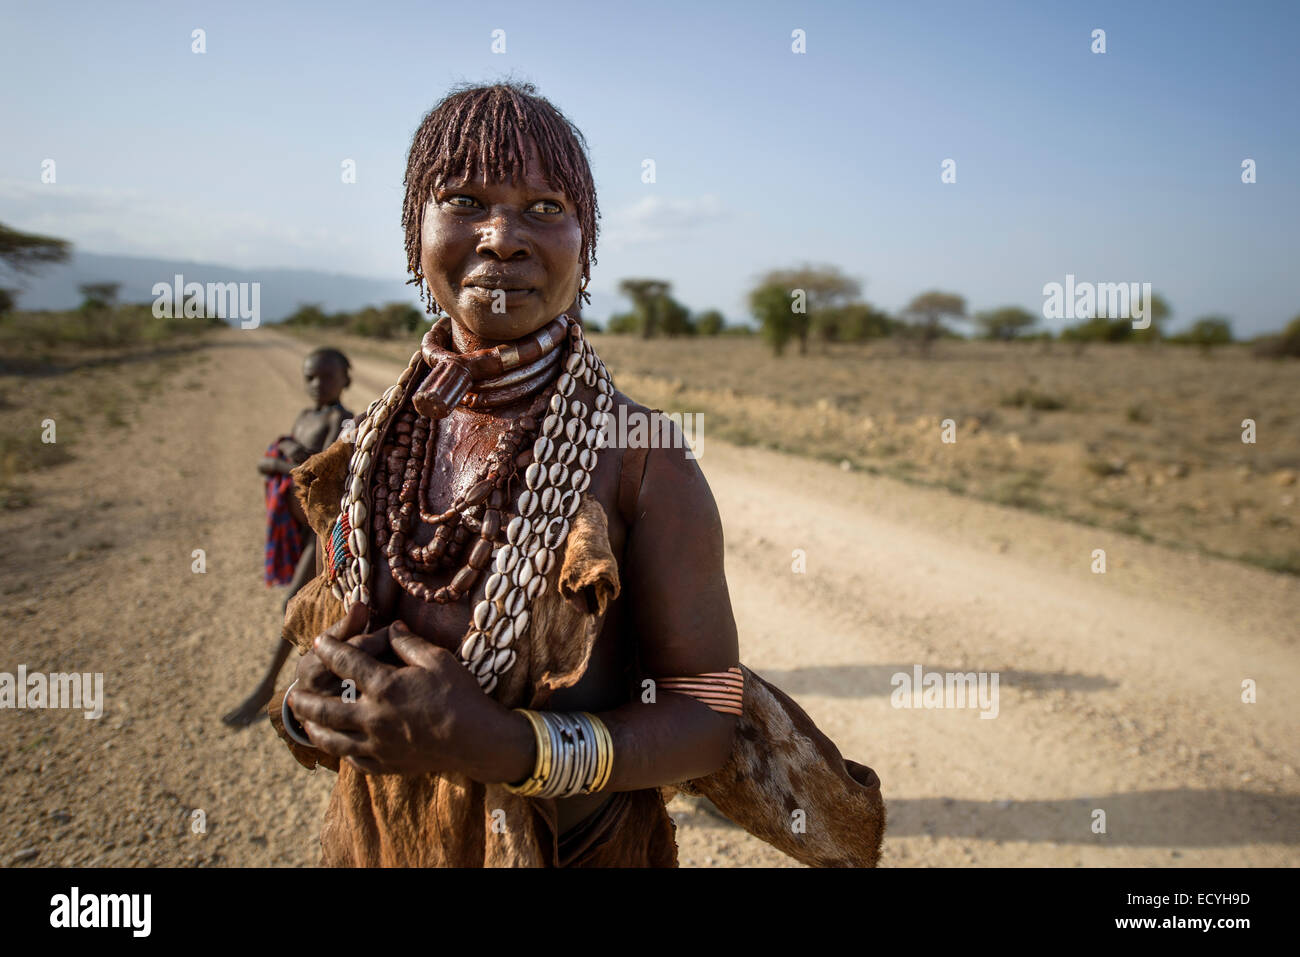 Hamar woman with ochre hair and decorations, Omo Valley, Ethiopia - Stock Image